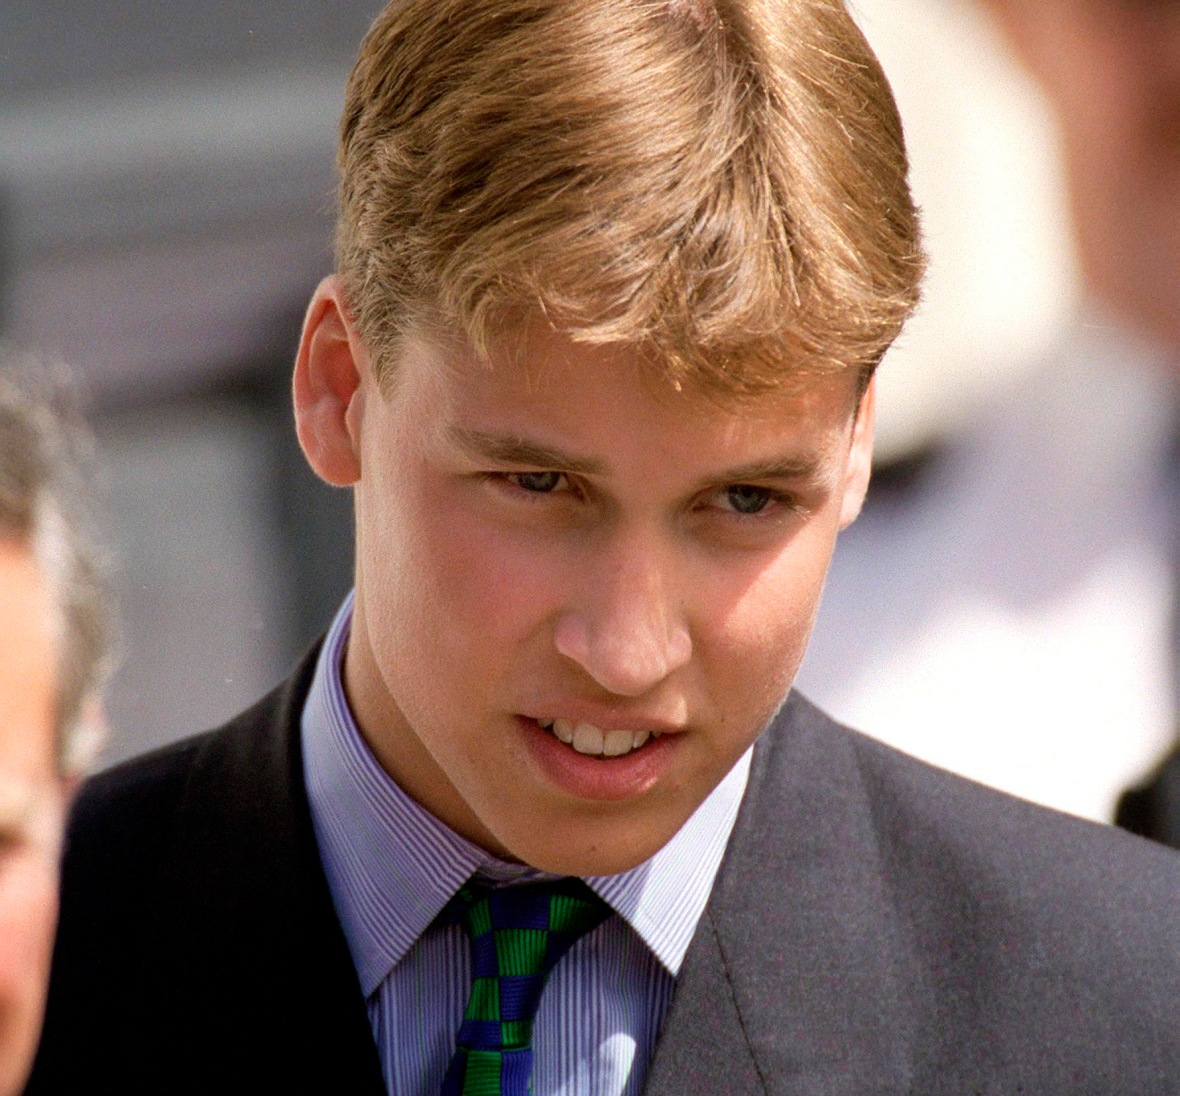 prince william 1998 - getty